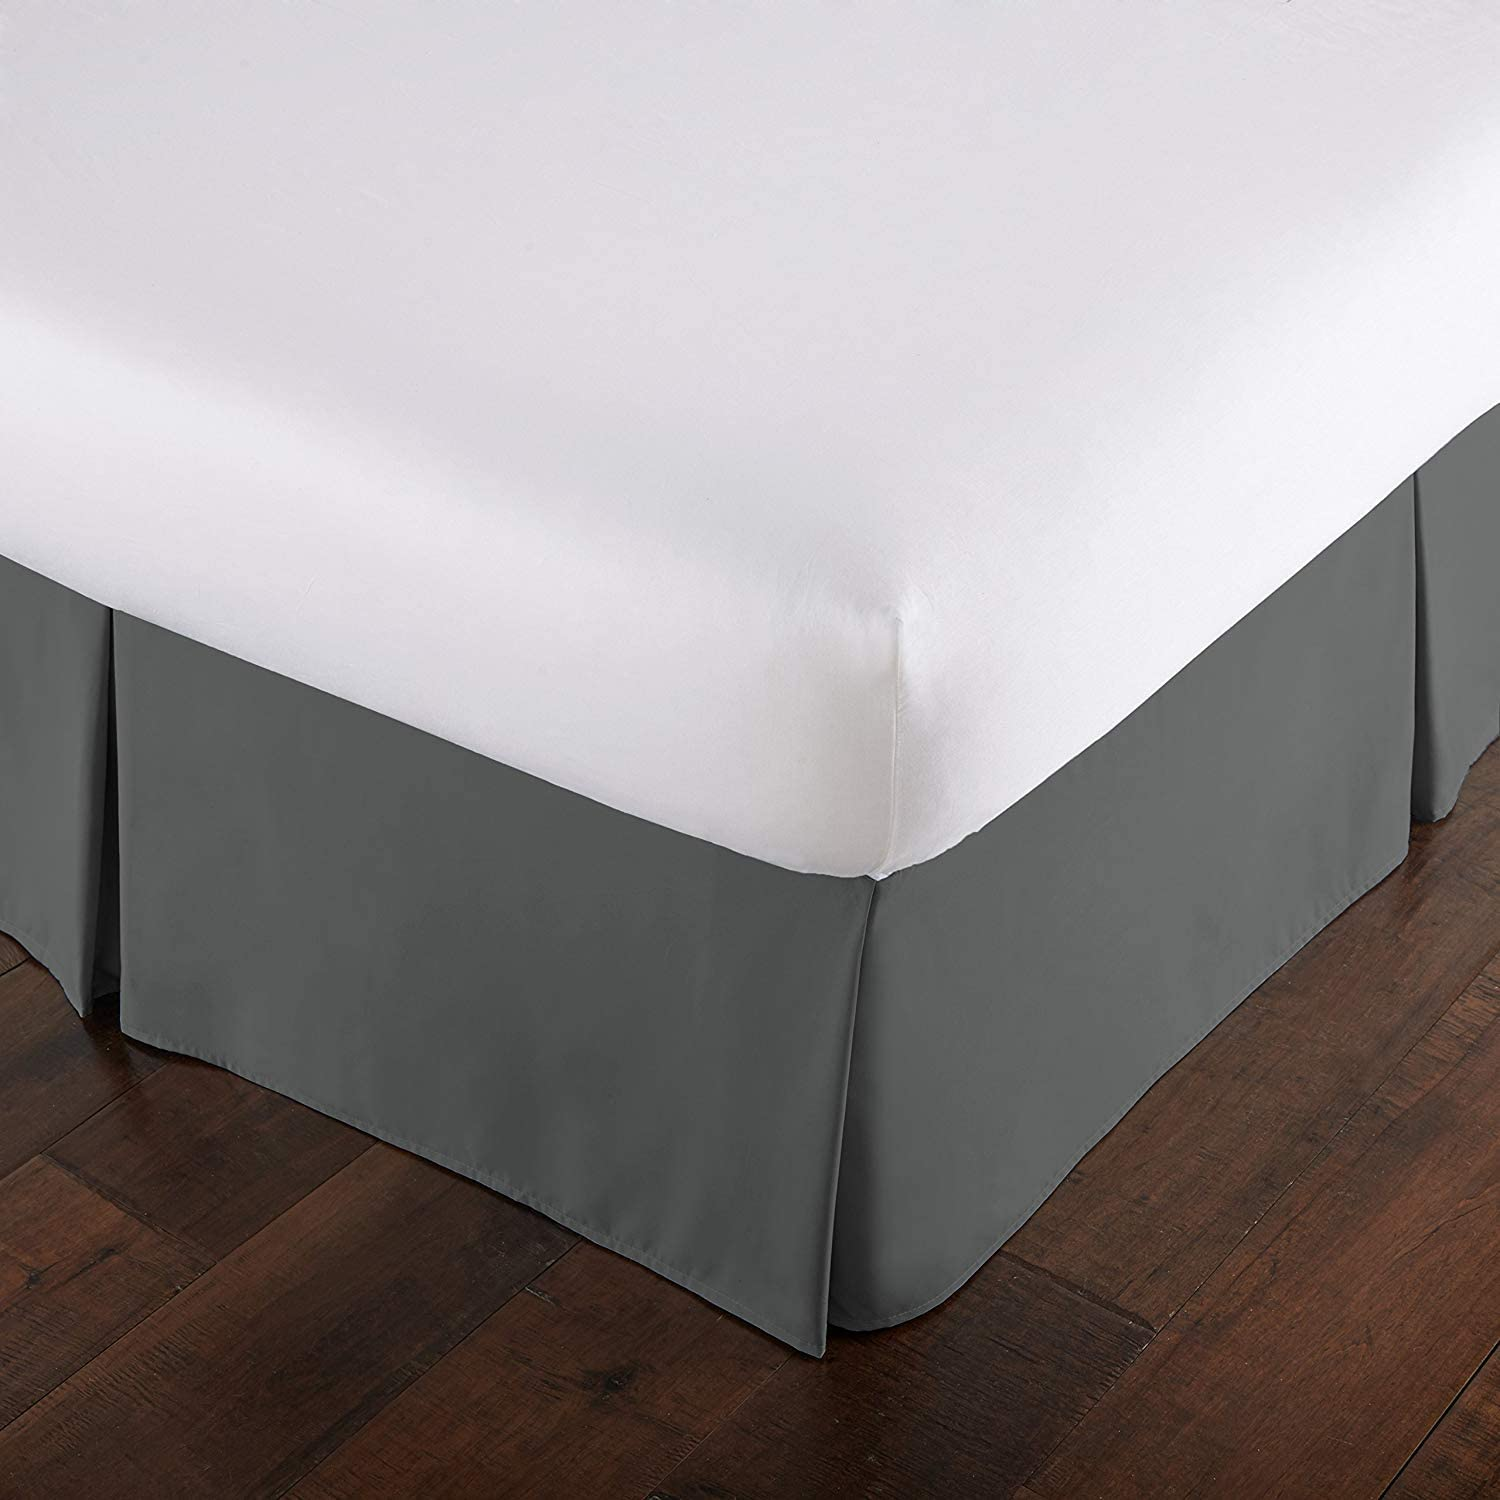 Unique Beddings Cotton Sateen Bed-Skirt (Queen, Grey) with 15 Inch Drop Length - 100% Finest Quality Long Staple Egyptian Cotton - Durable, Comfortable and Abrasion Resistant, Quadruple Pleated, Cotton Blended Platform